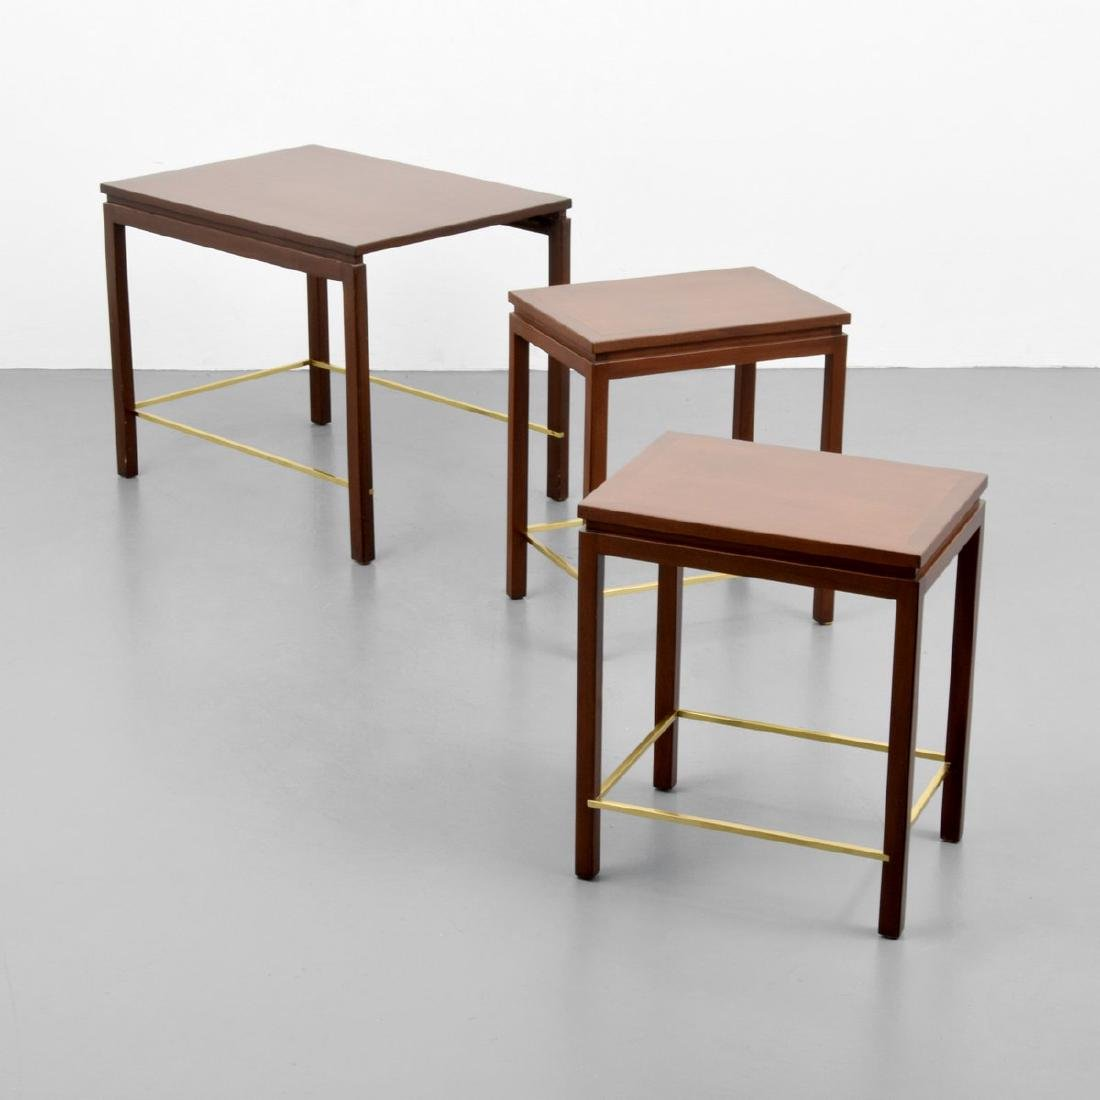 3 Edward Wormley Nesting Occasional Tables